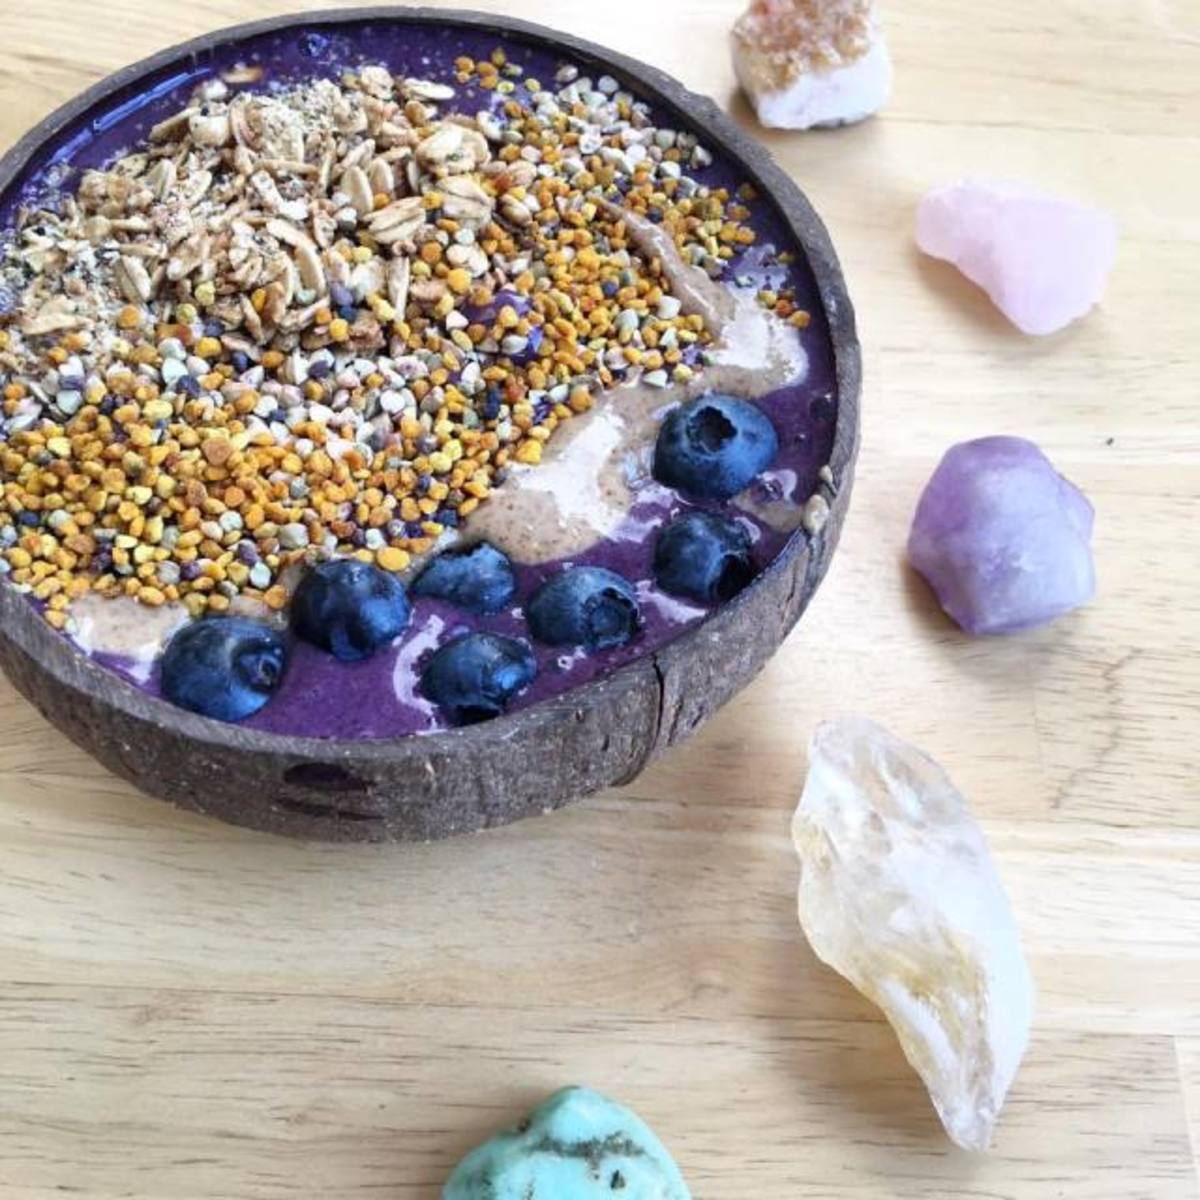 Blended bananas, wild blueberries, vitamin c powder, Sunwarrior Protein, and water. Topped with sprouted granola, wild bee pollen, buckwheat groats, almond butter & blueberries.